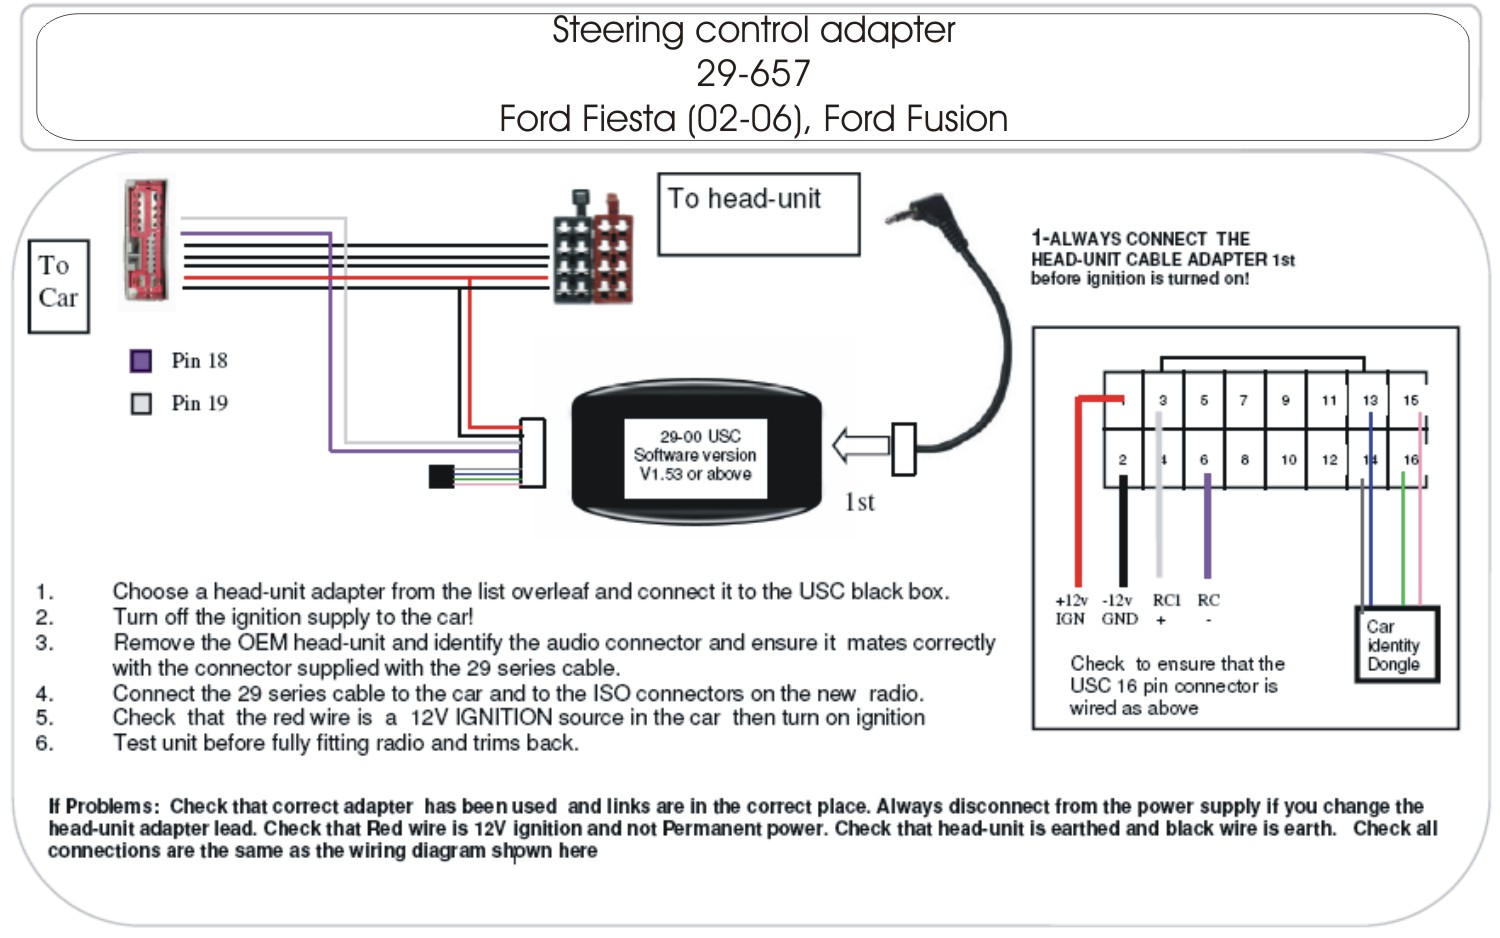 20022006 Ford Fiesta Steering Control Adapter | Schematic Wiring Diagrams Solutions